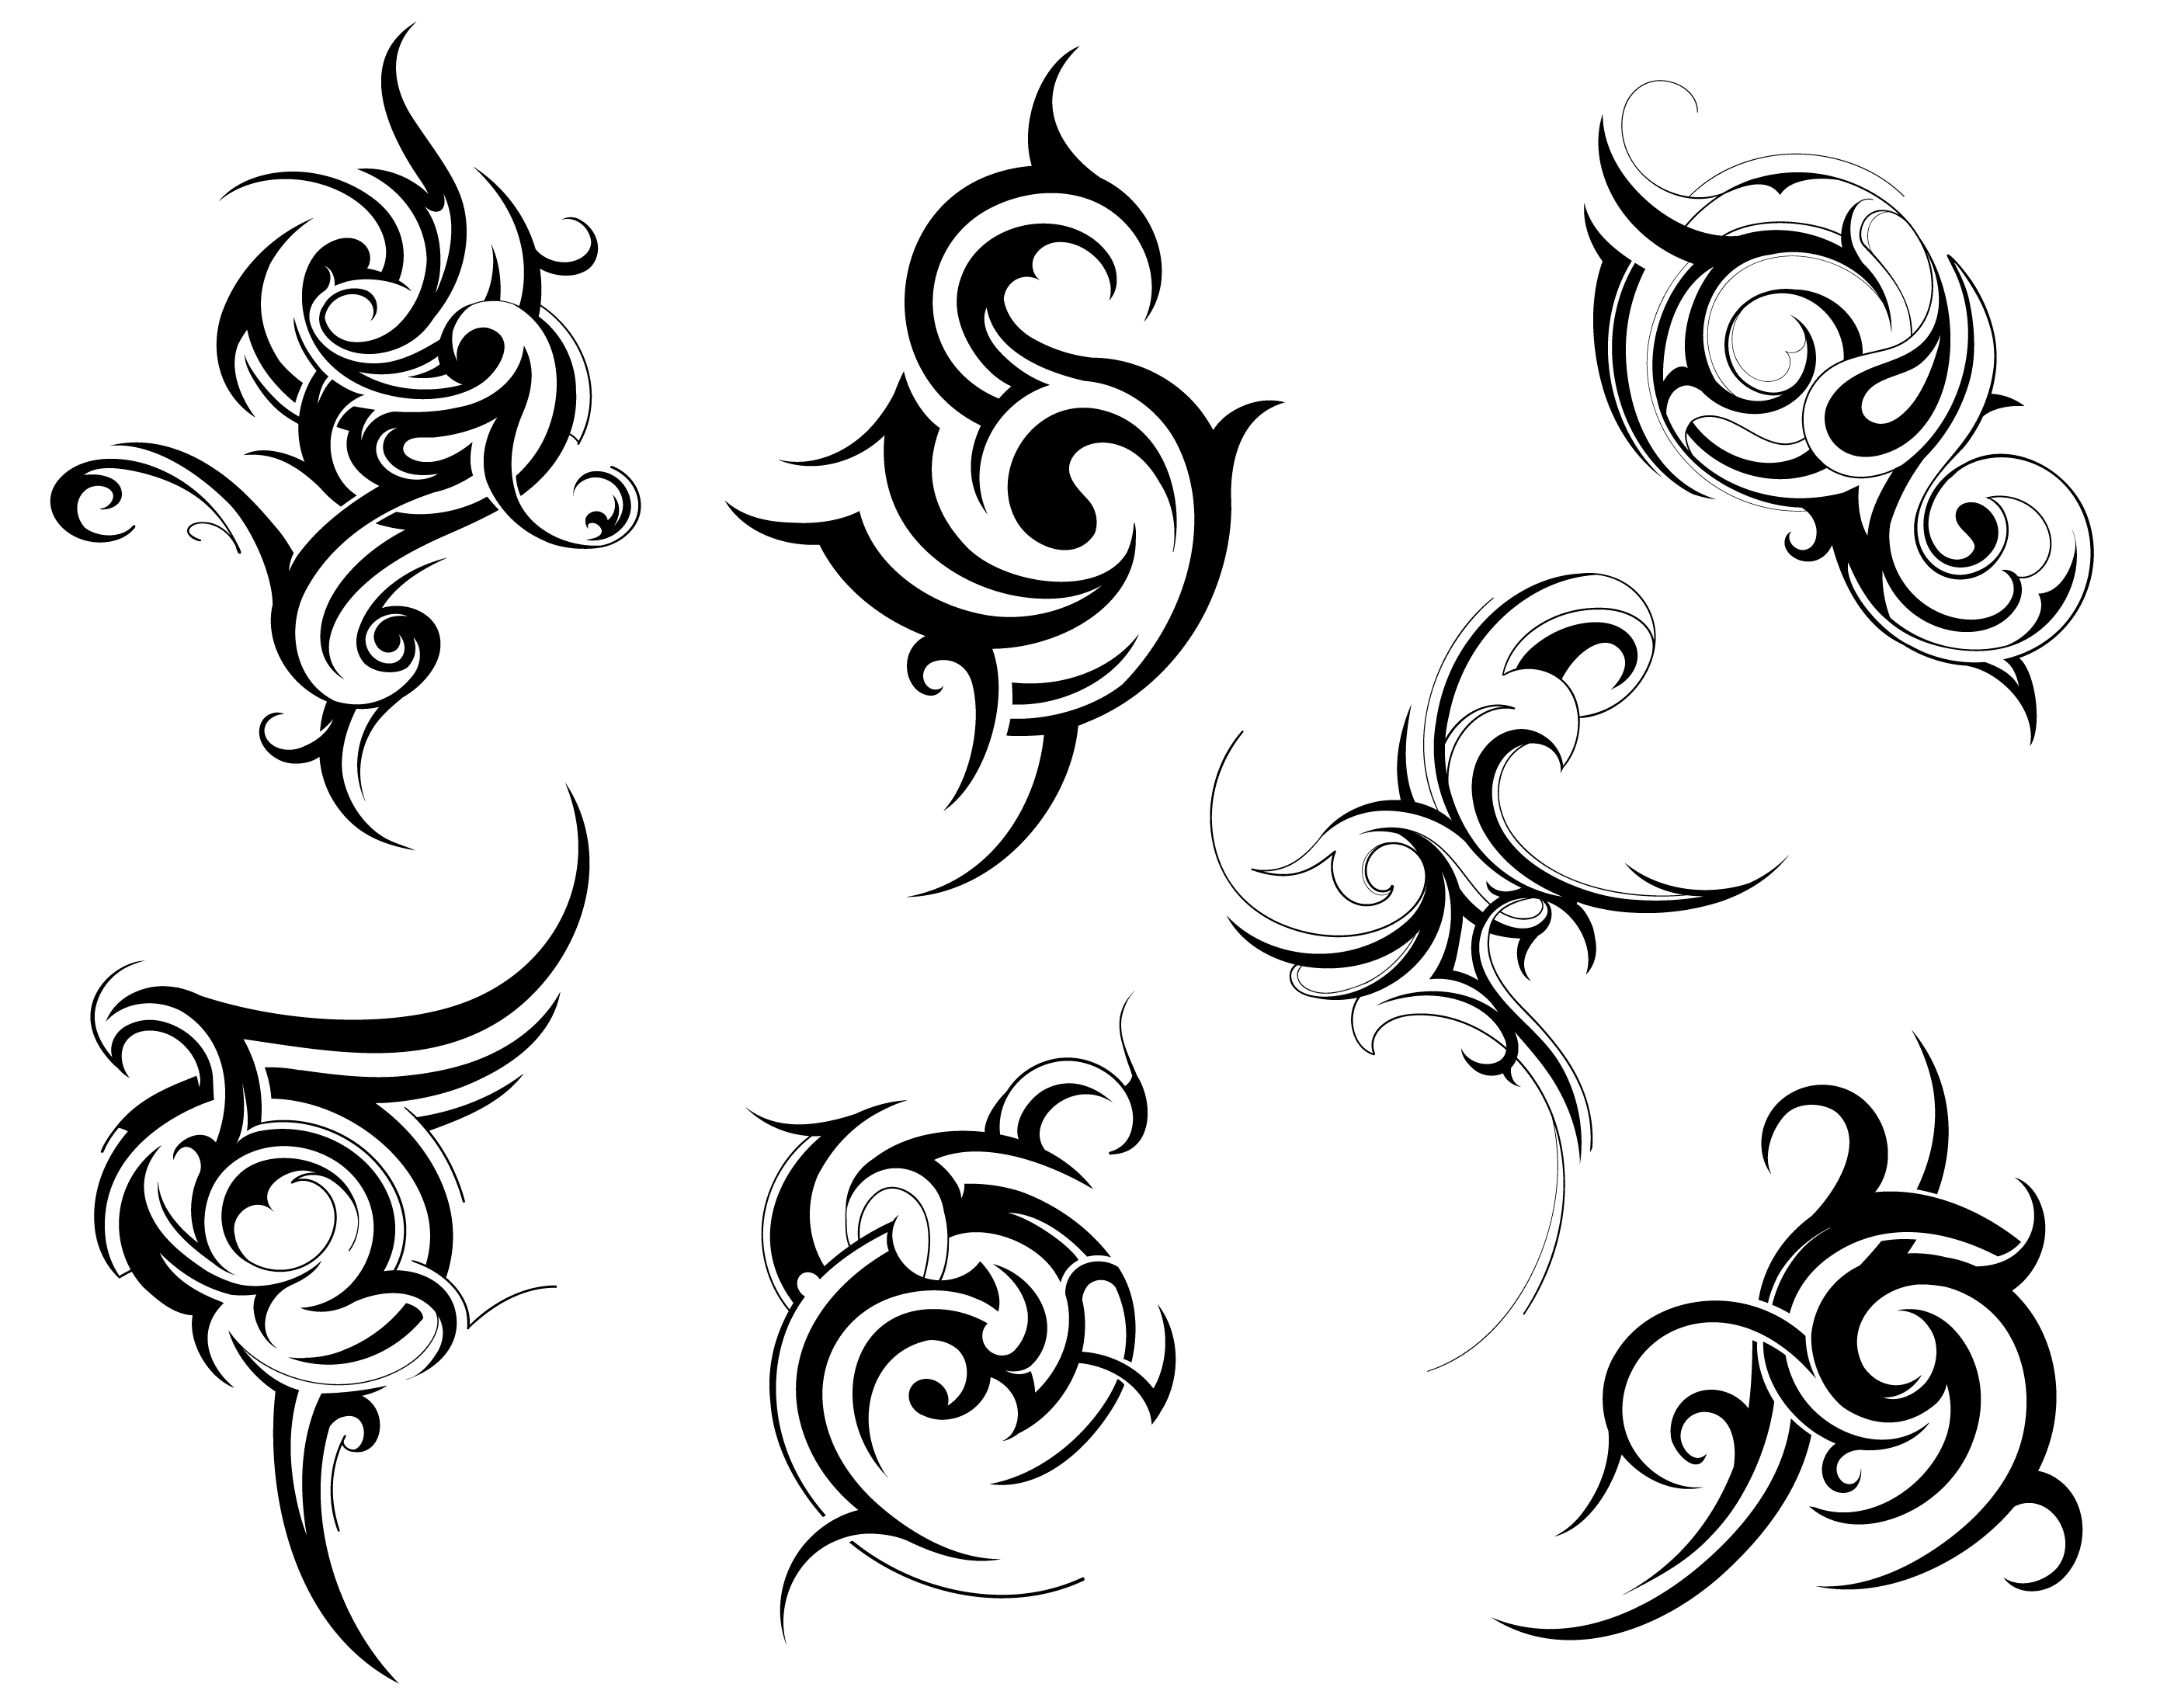 Tribal tattoo meaning tattoos with meaning tribal tattoo buycottarizona Choice Image